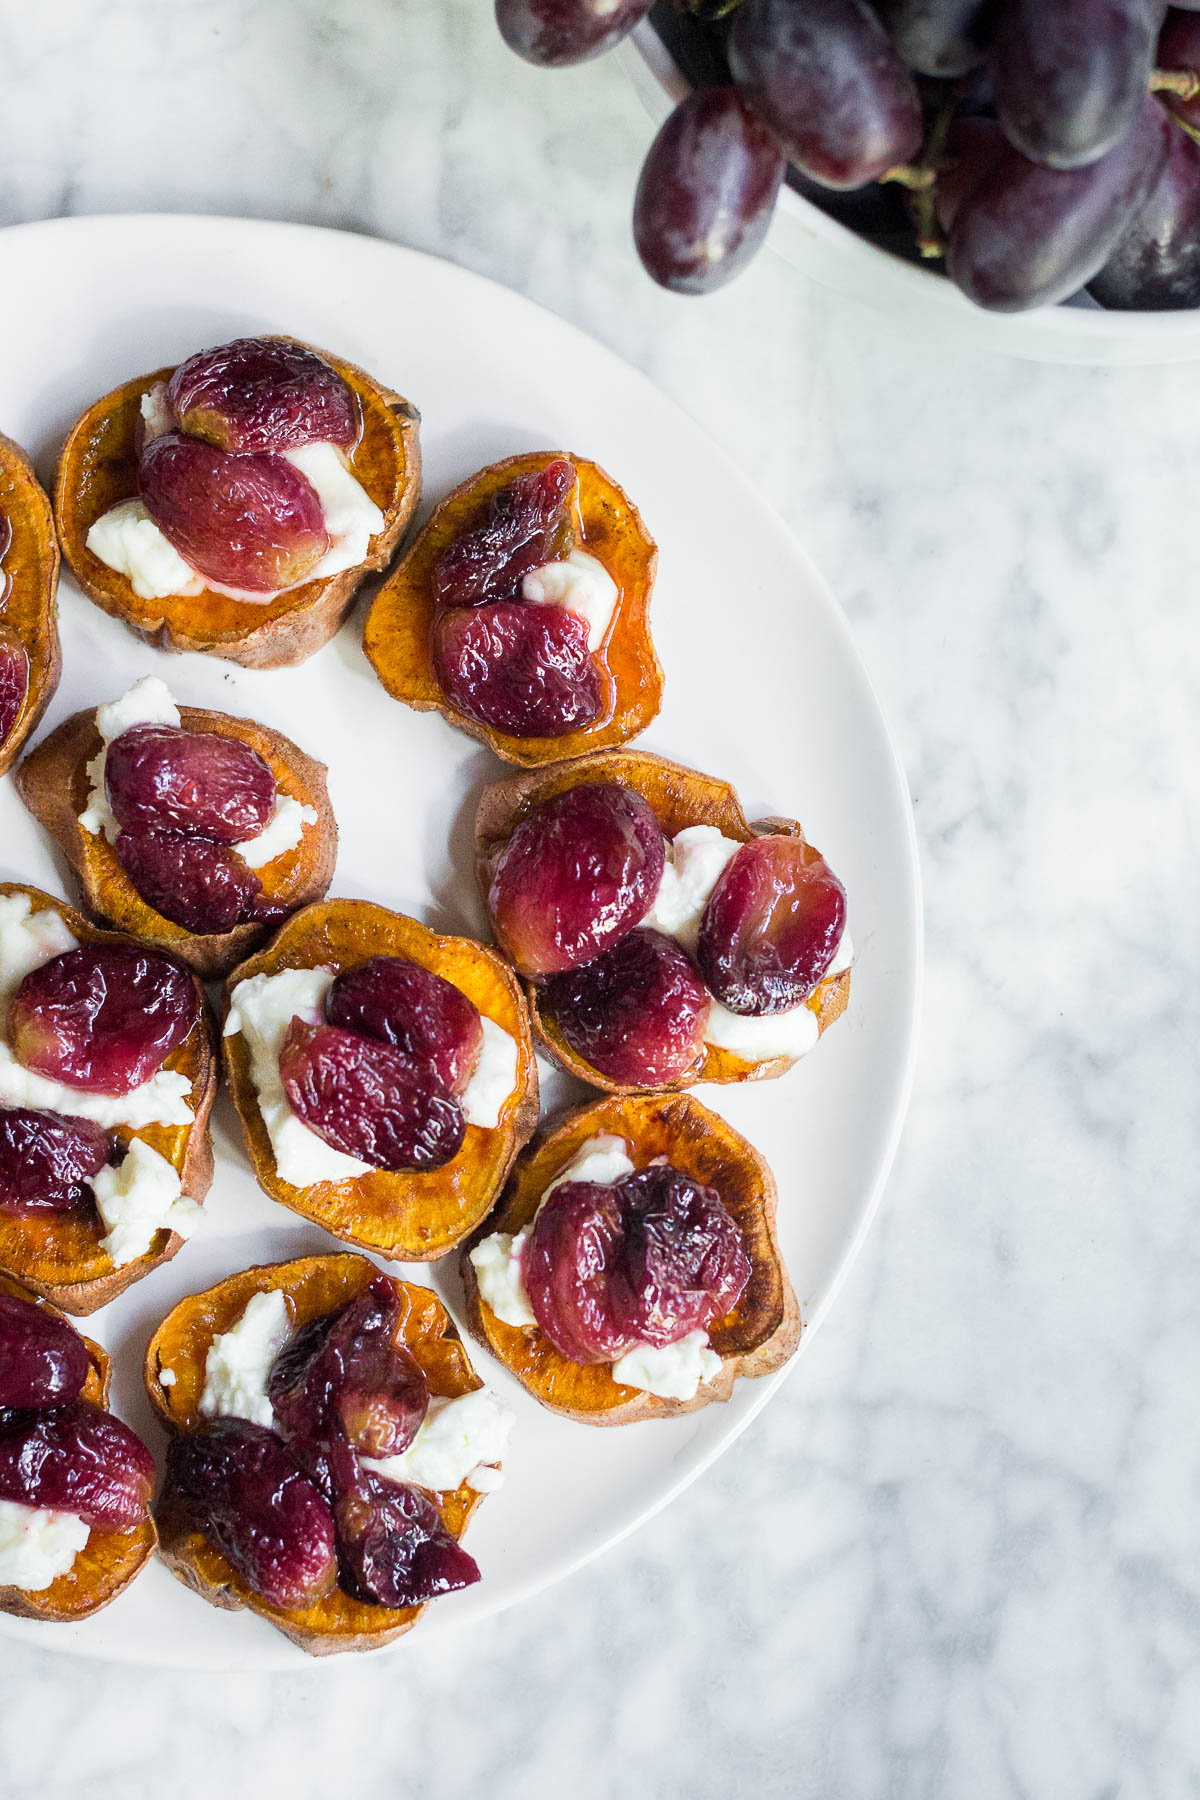 Aerial view of a plate of sweet potato rounds with roasted grapes, goat cheese and honey and a bowl of fresh grapes